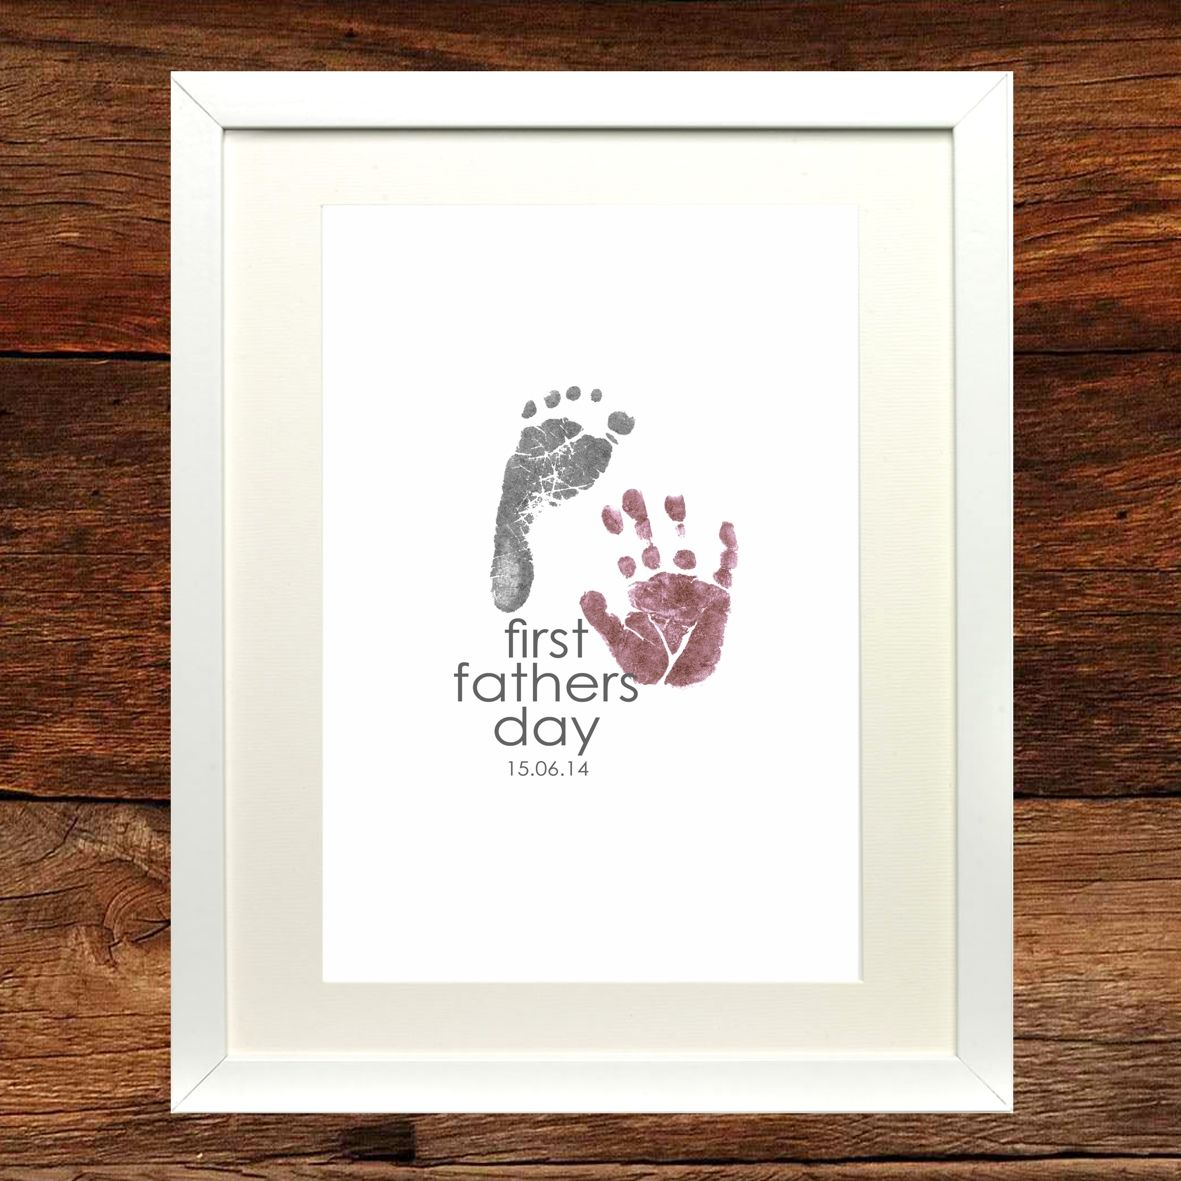 First Time Fathers Day Gifts Part - 28: Personalized Fatheru0027s Day Gifts From The Kids: First Fathers Day Art Print  By Niko And Lily At Etsy | Fathers Day | Pinterest | Father, Etsy And  Printing